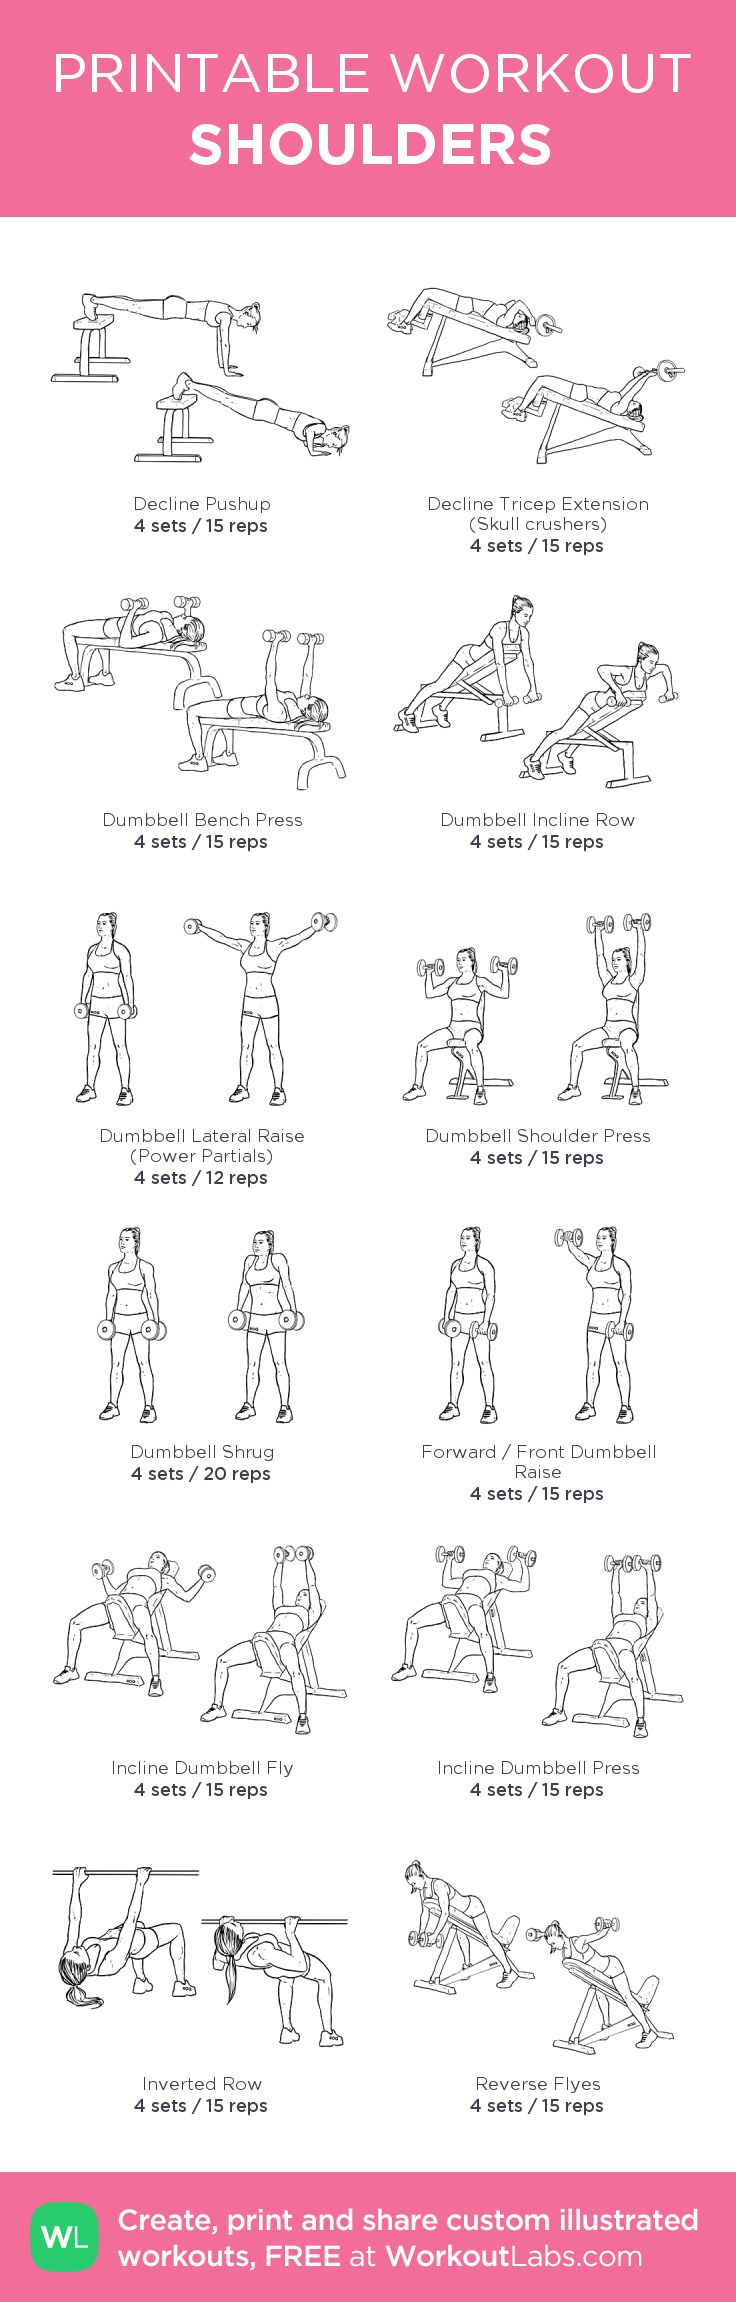 Excerise: SHOULDERS · WorkoutLabs Fit